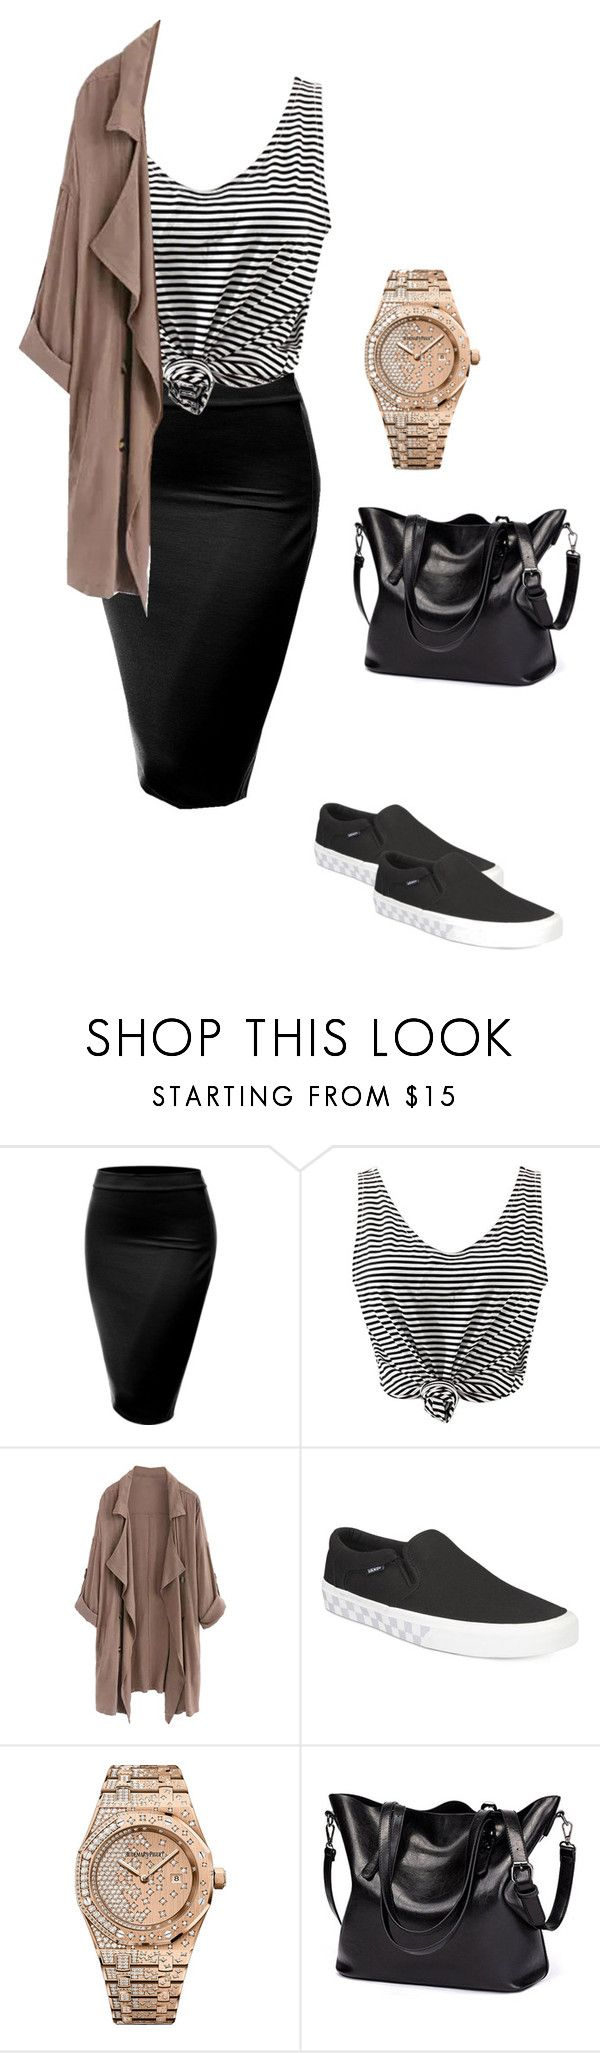 """Untitled #91"" by mayventu1999 on Polyvore featuring J.TOMSON, WithChic, Vans and Audemars Piguet"